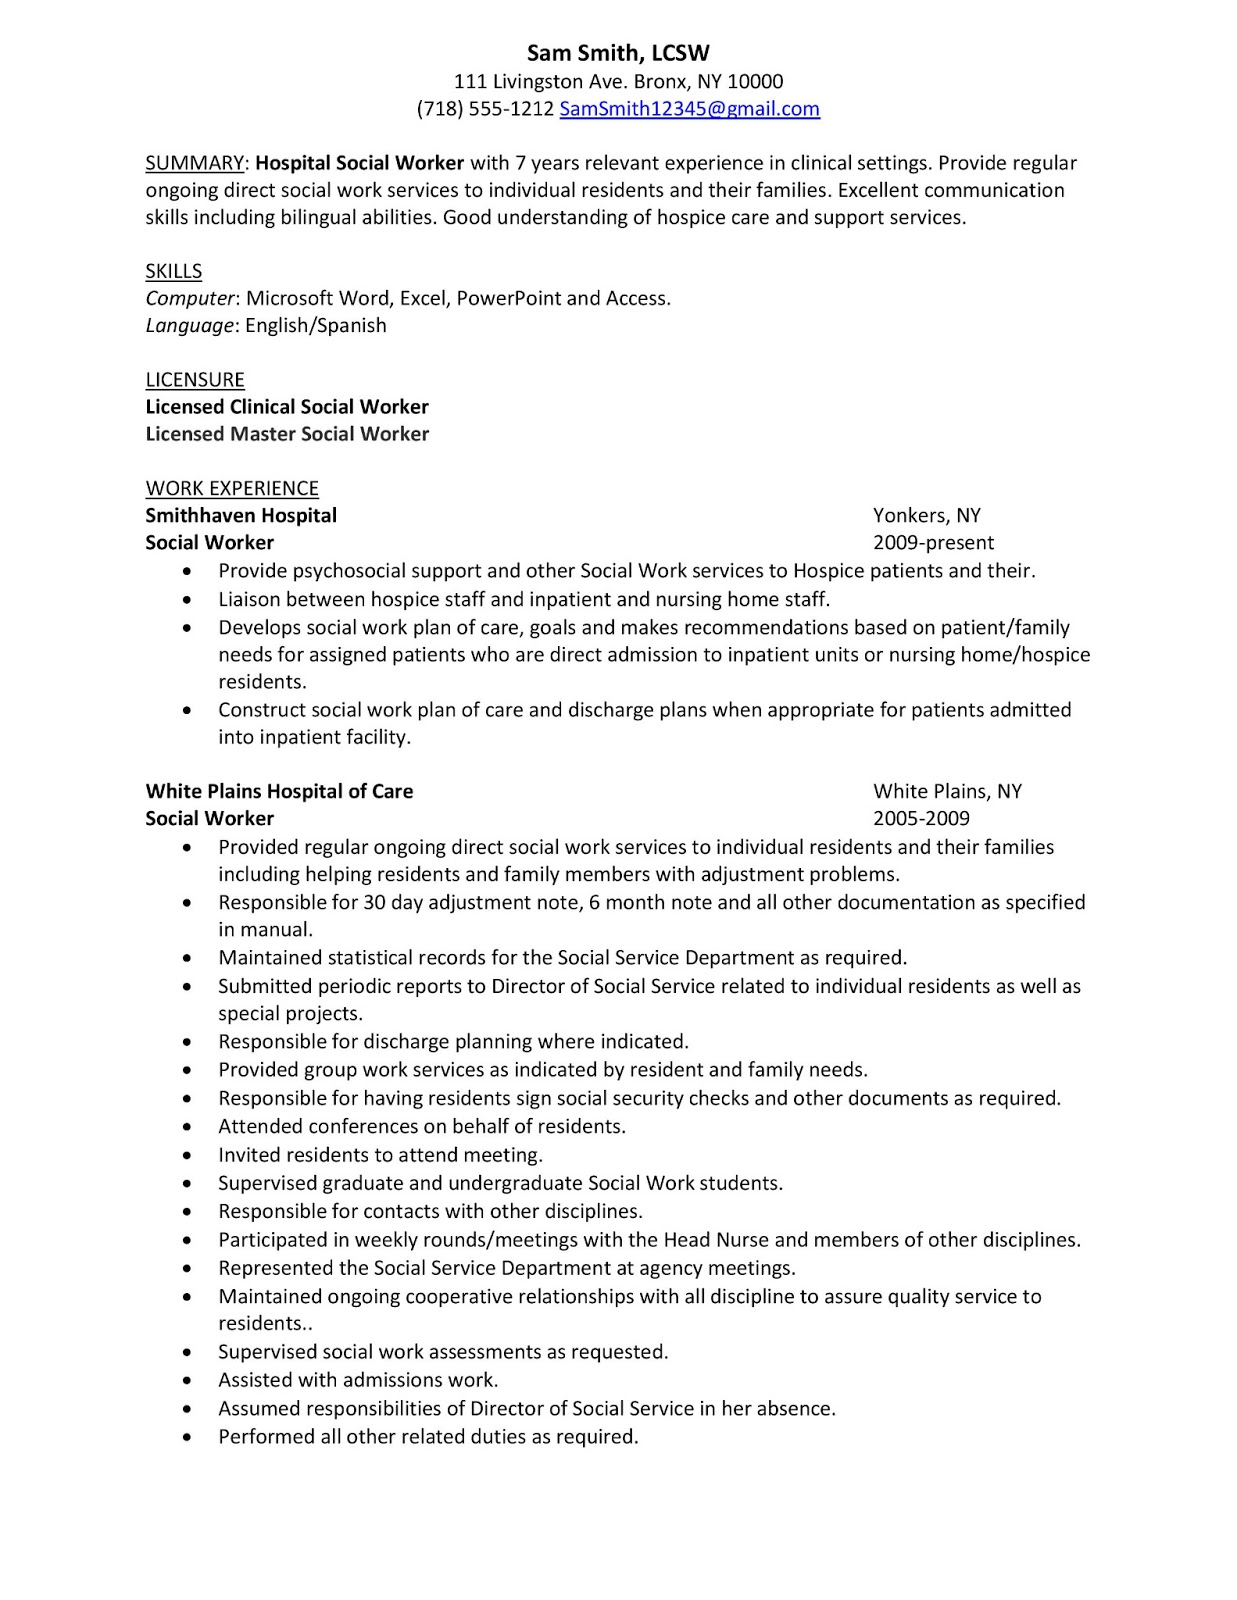 clinical social work resumes - Work Resume Template